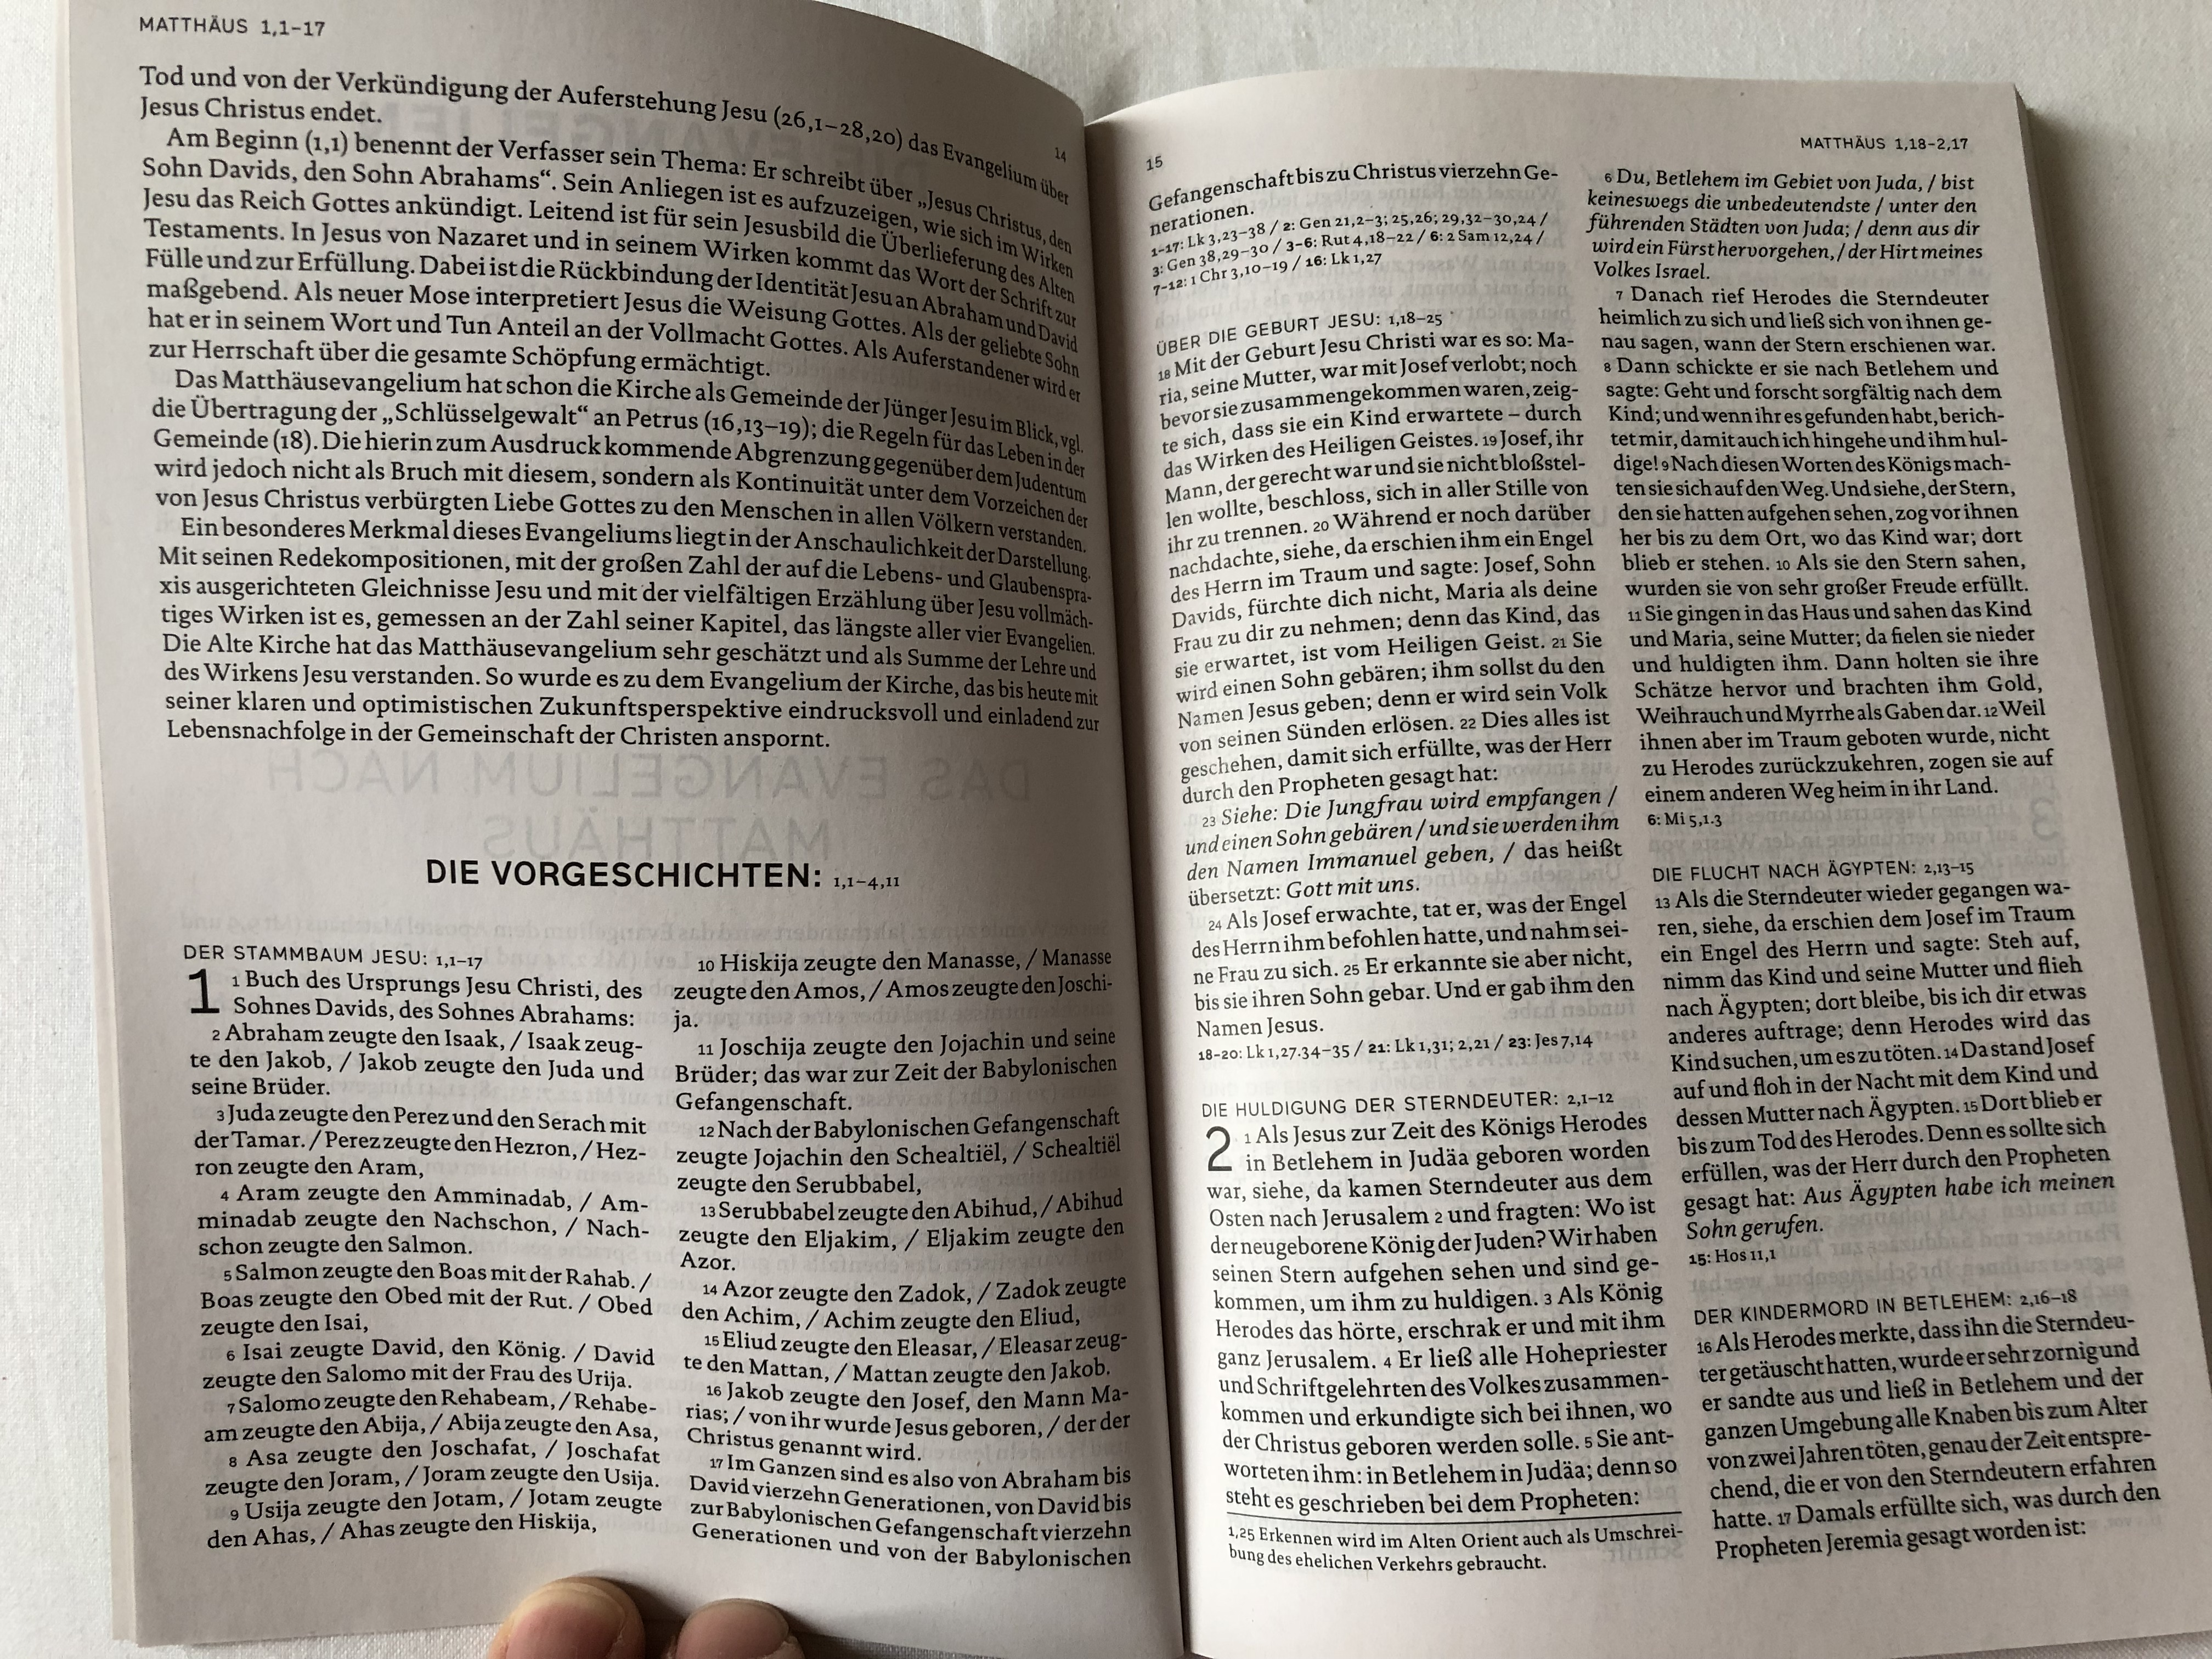 das-neue-testament-einheits-bersetzung-2.auflage-the-new-testament-in-german-unitary-translation-2nd-edition-book-introductions-references-notes-and-maps-paperback-2018-kbw-6-.jpg